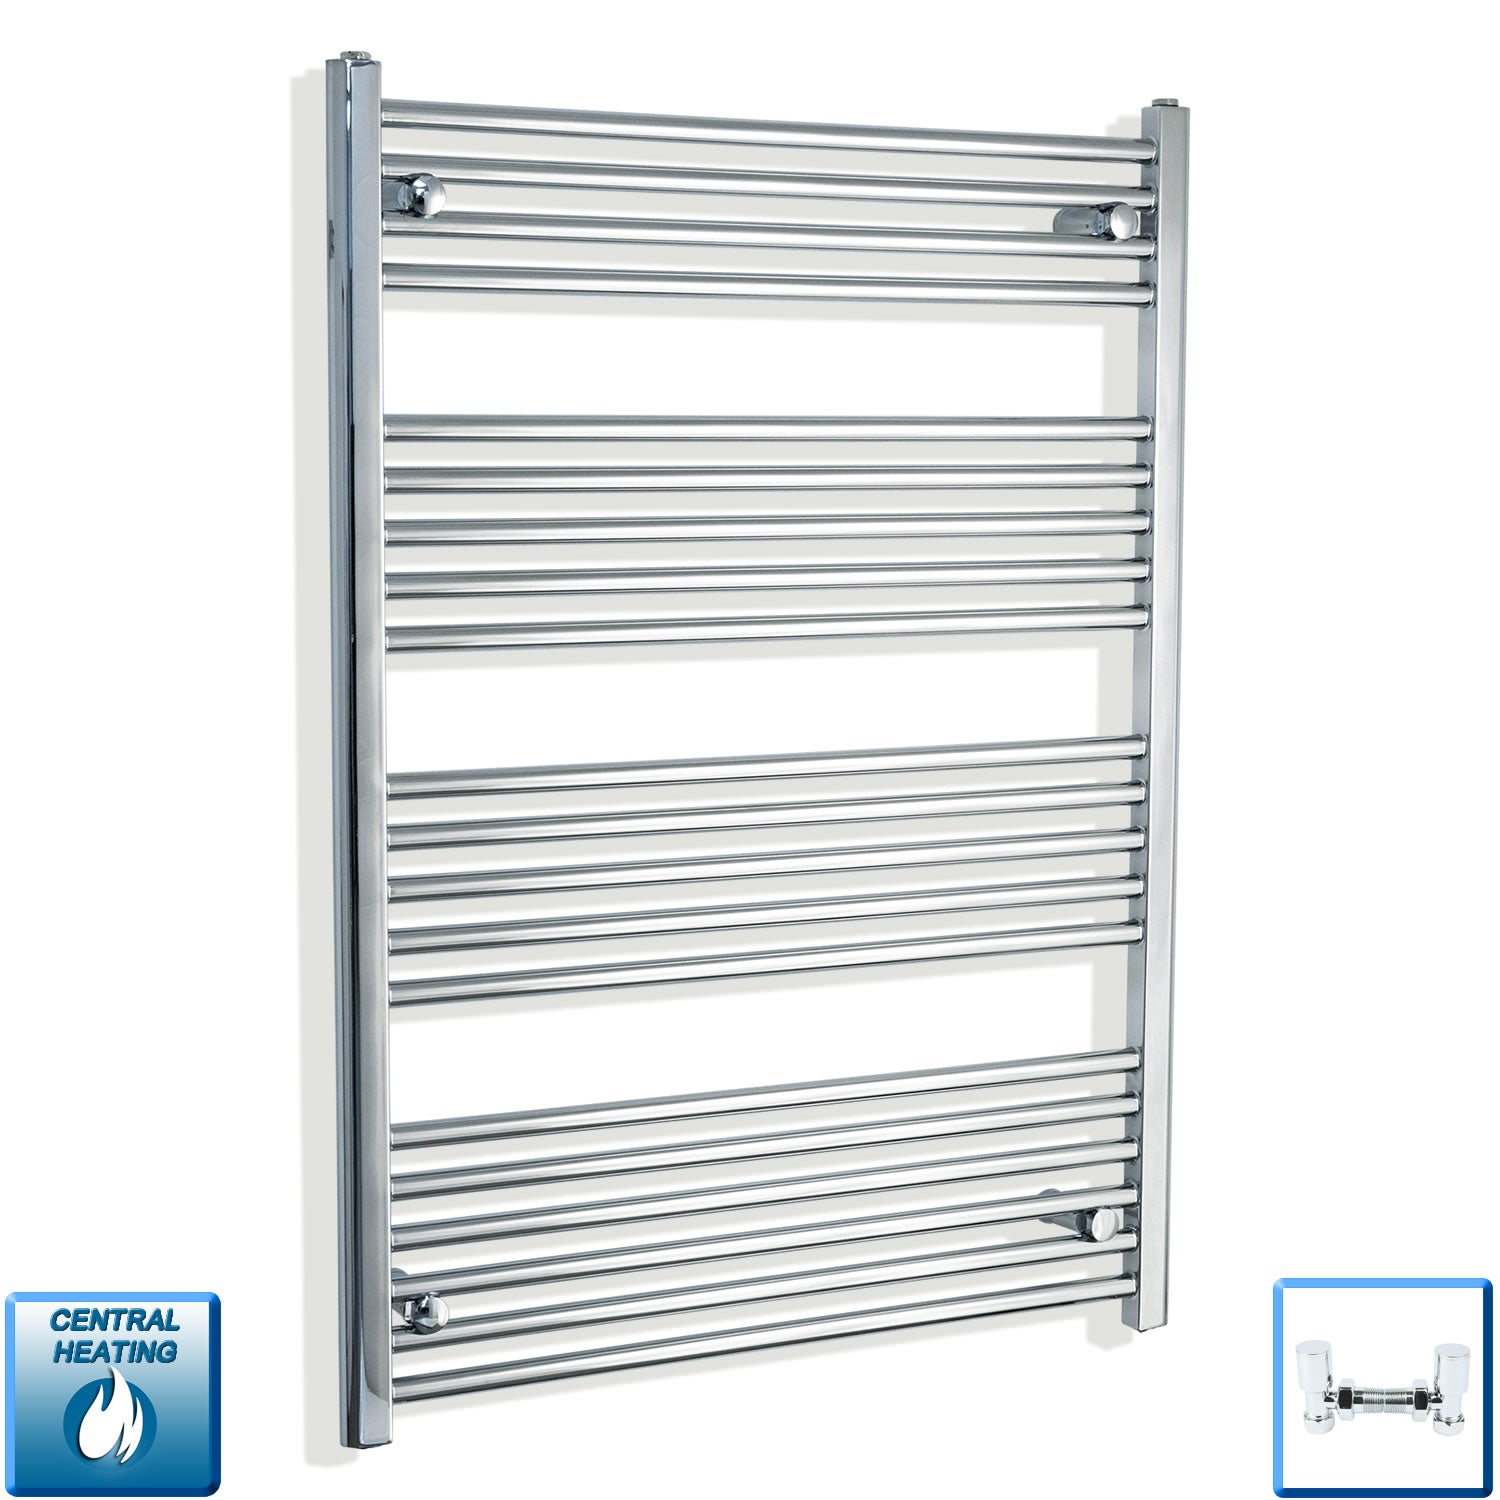 800mm Wide 1100mm High Chrome Towel Rail Radiator With Angled Valve